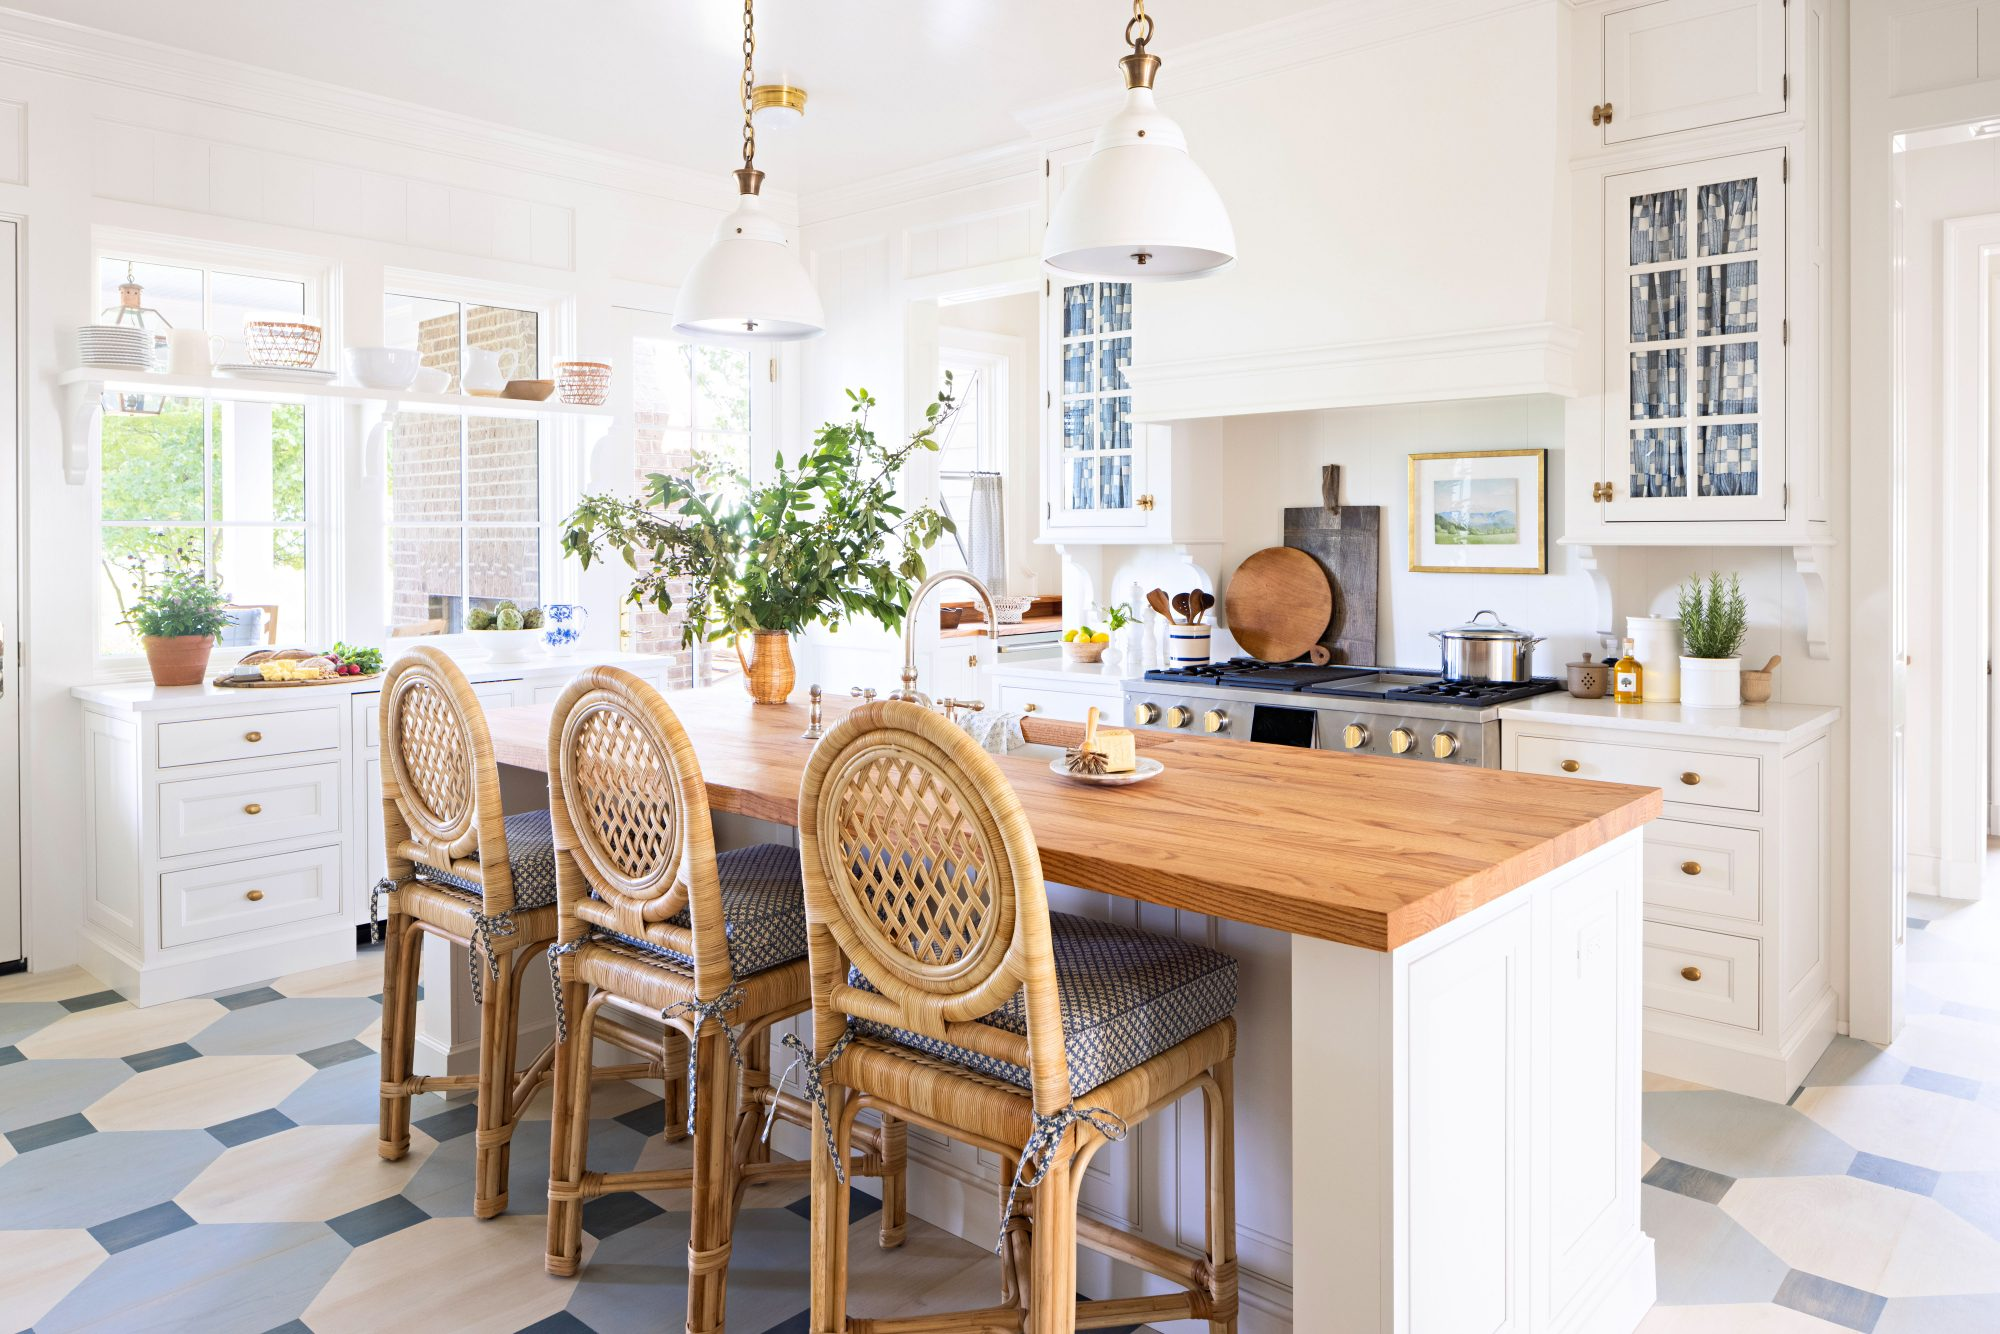 2021 Idea House Kitchen with White Walls and Painted Floor